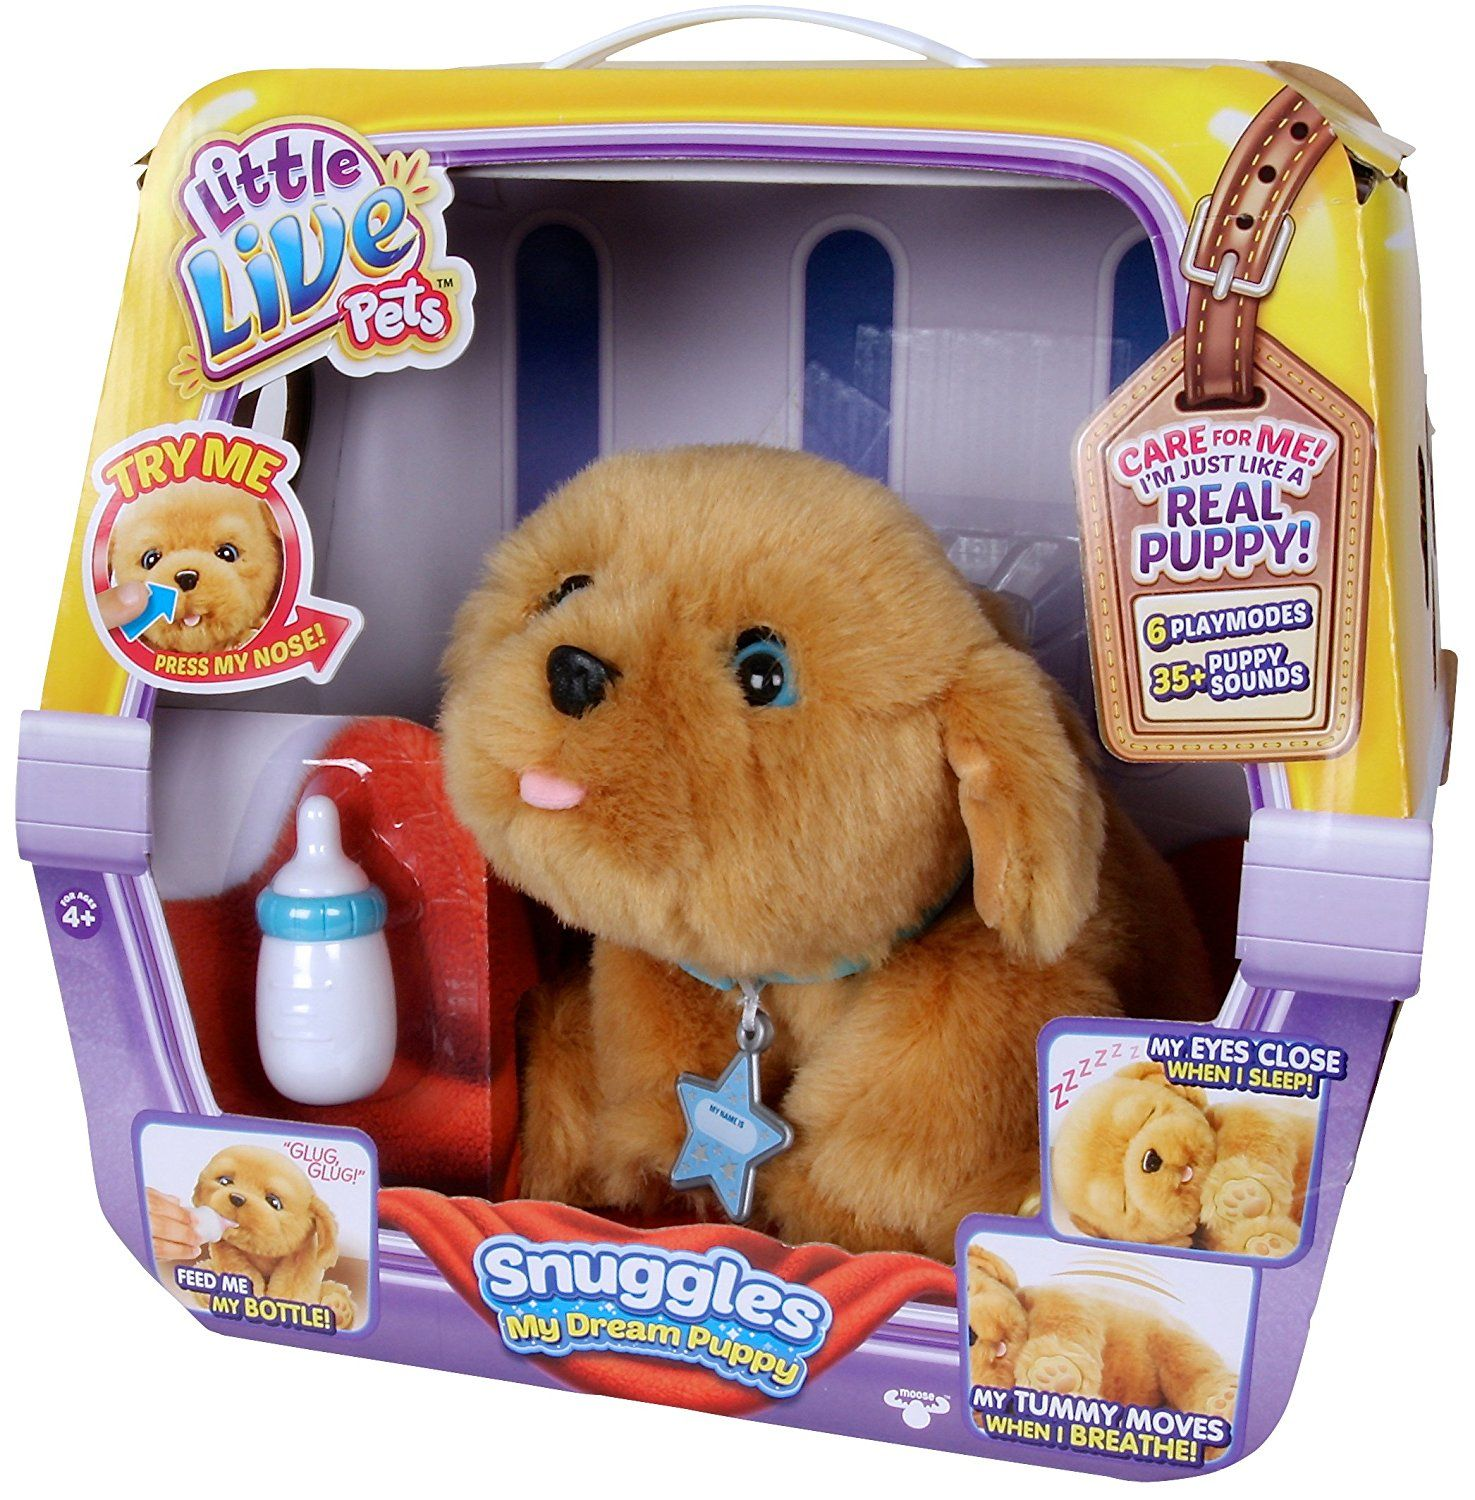 Amazon Com Little Live Pets Snuggles My Dream Puppy Playset Toys Games Little Live Pets Puppy Soft Toy Puppy Snuggles